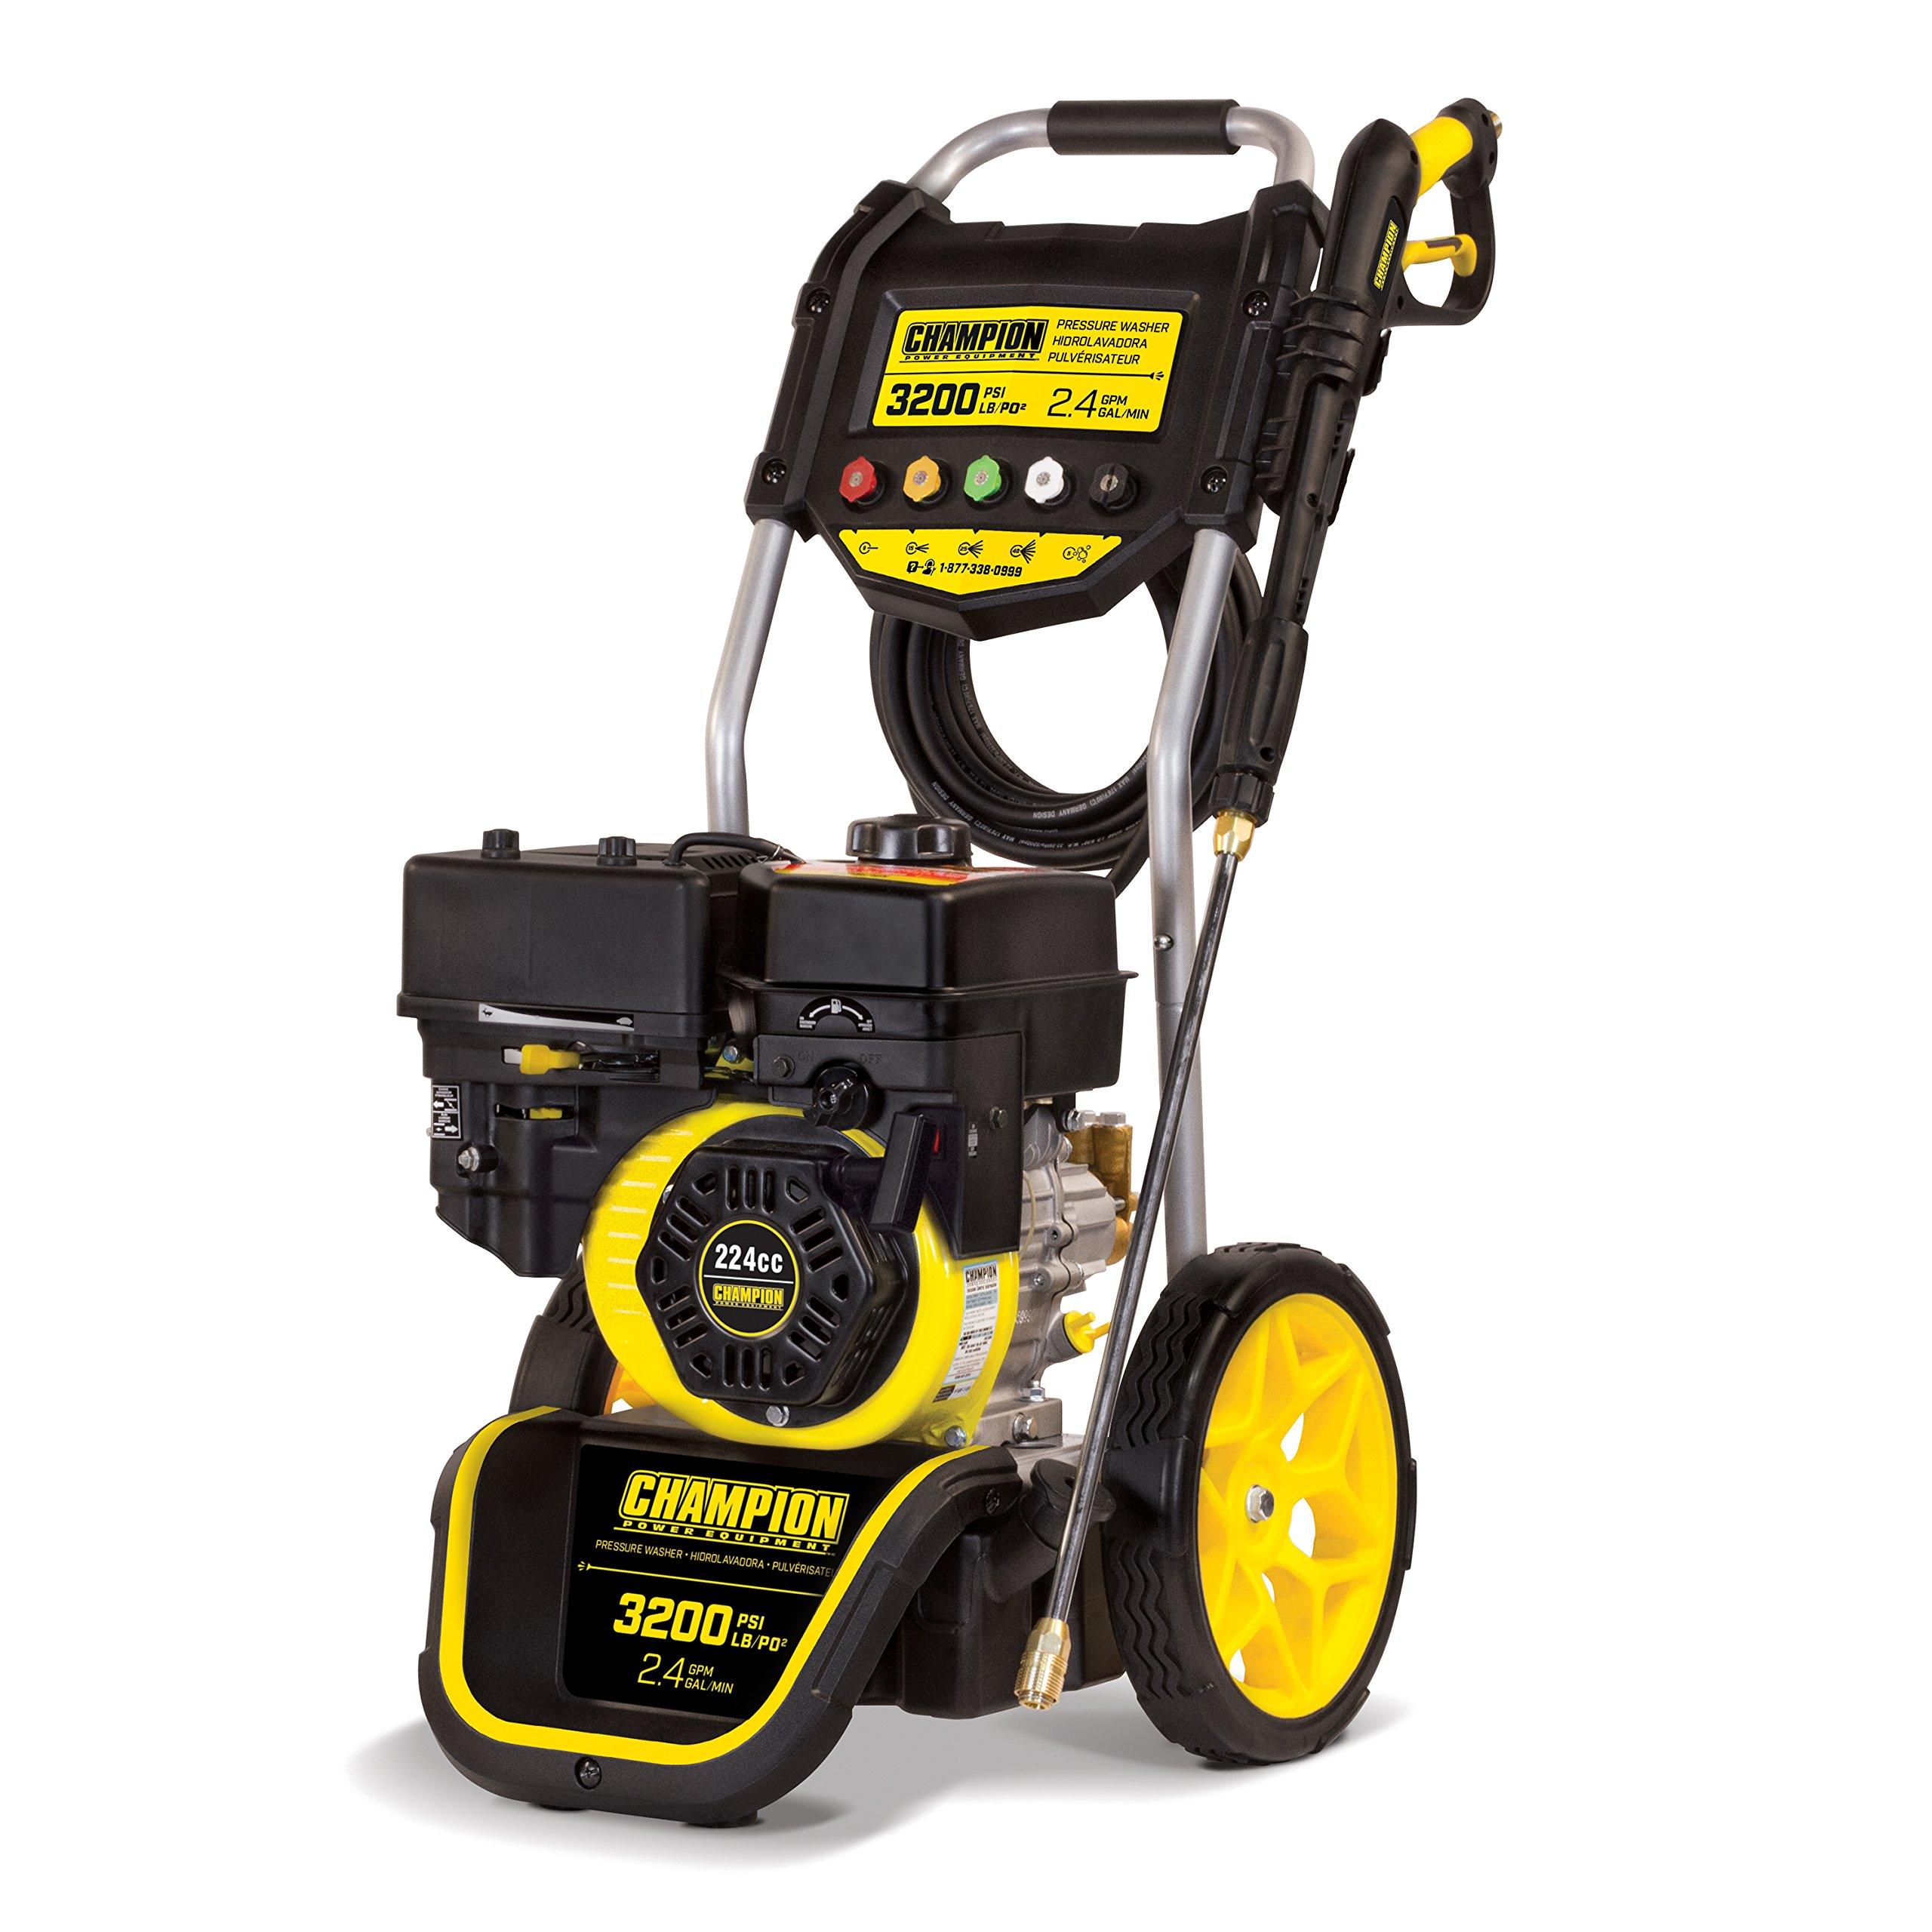 Champion 3200-PSI 2.4-GPM Dolly-Style Gas Pressure Washer by Champion Power Equipment